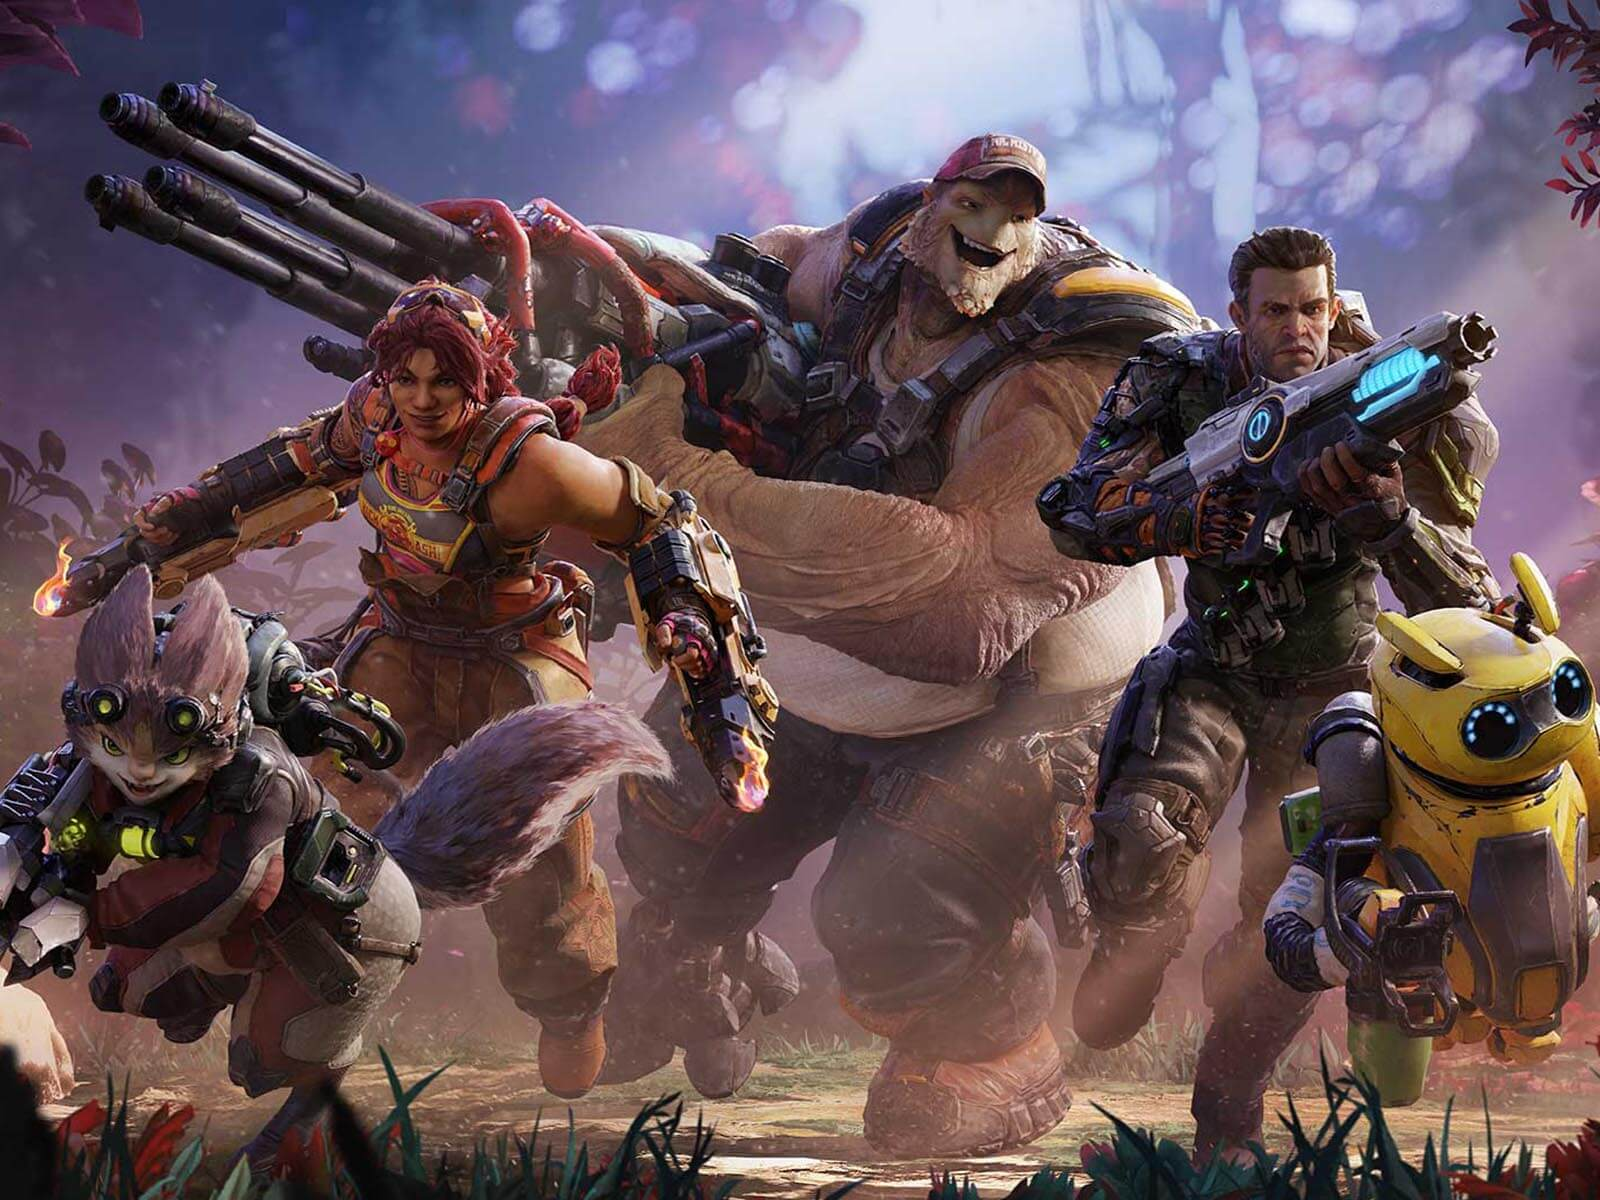 A group of several heroes from the Crucible game charging into action.